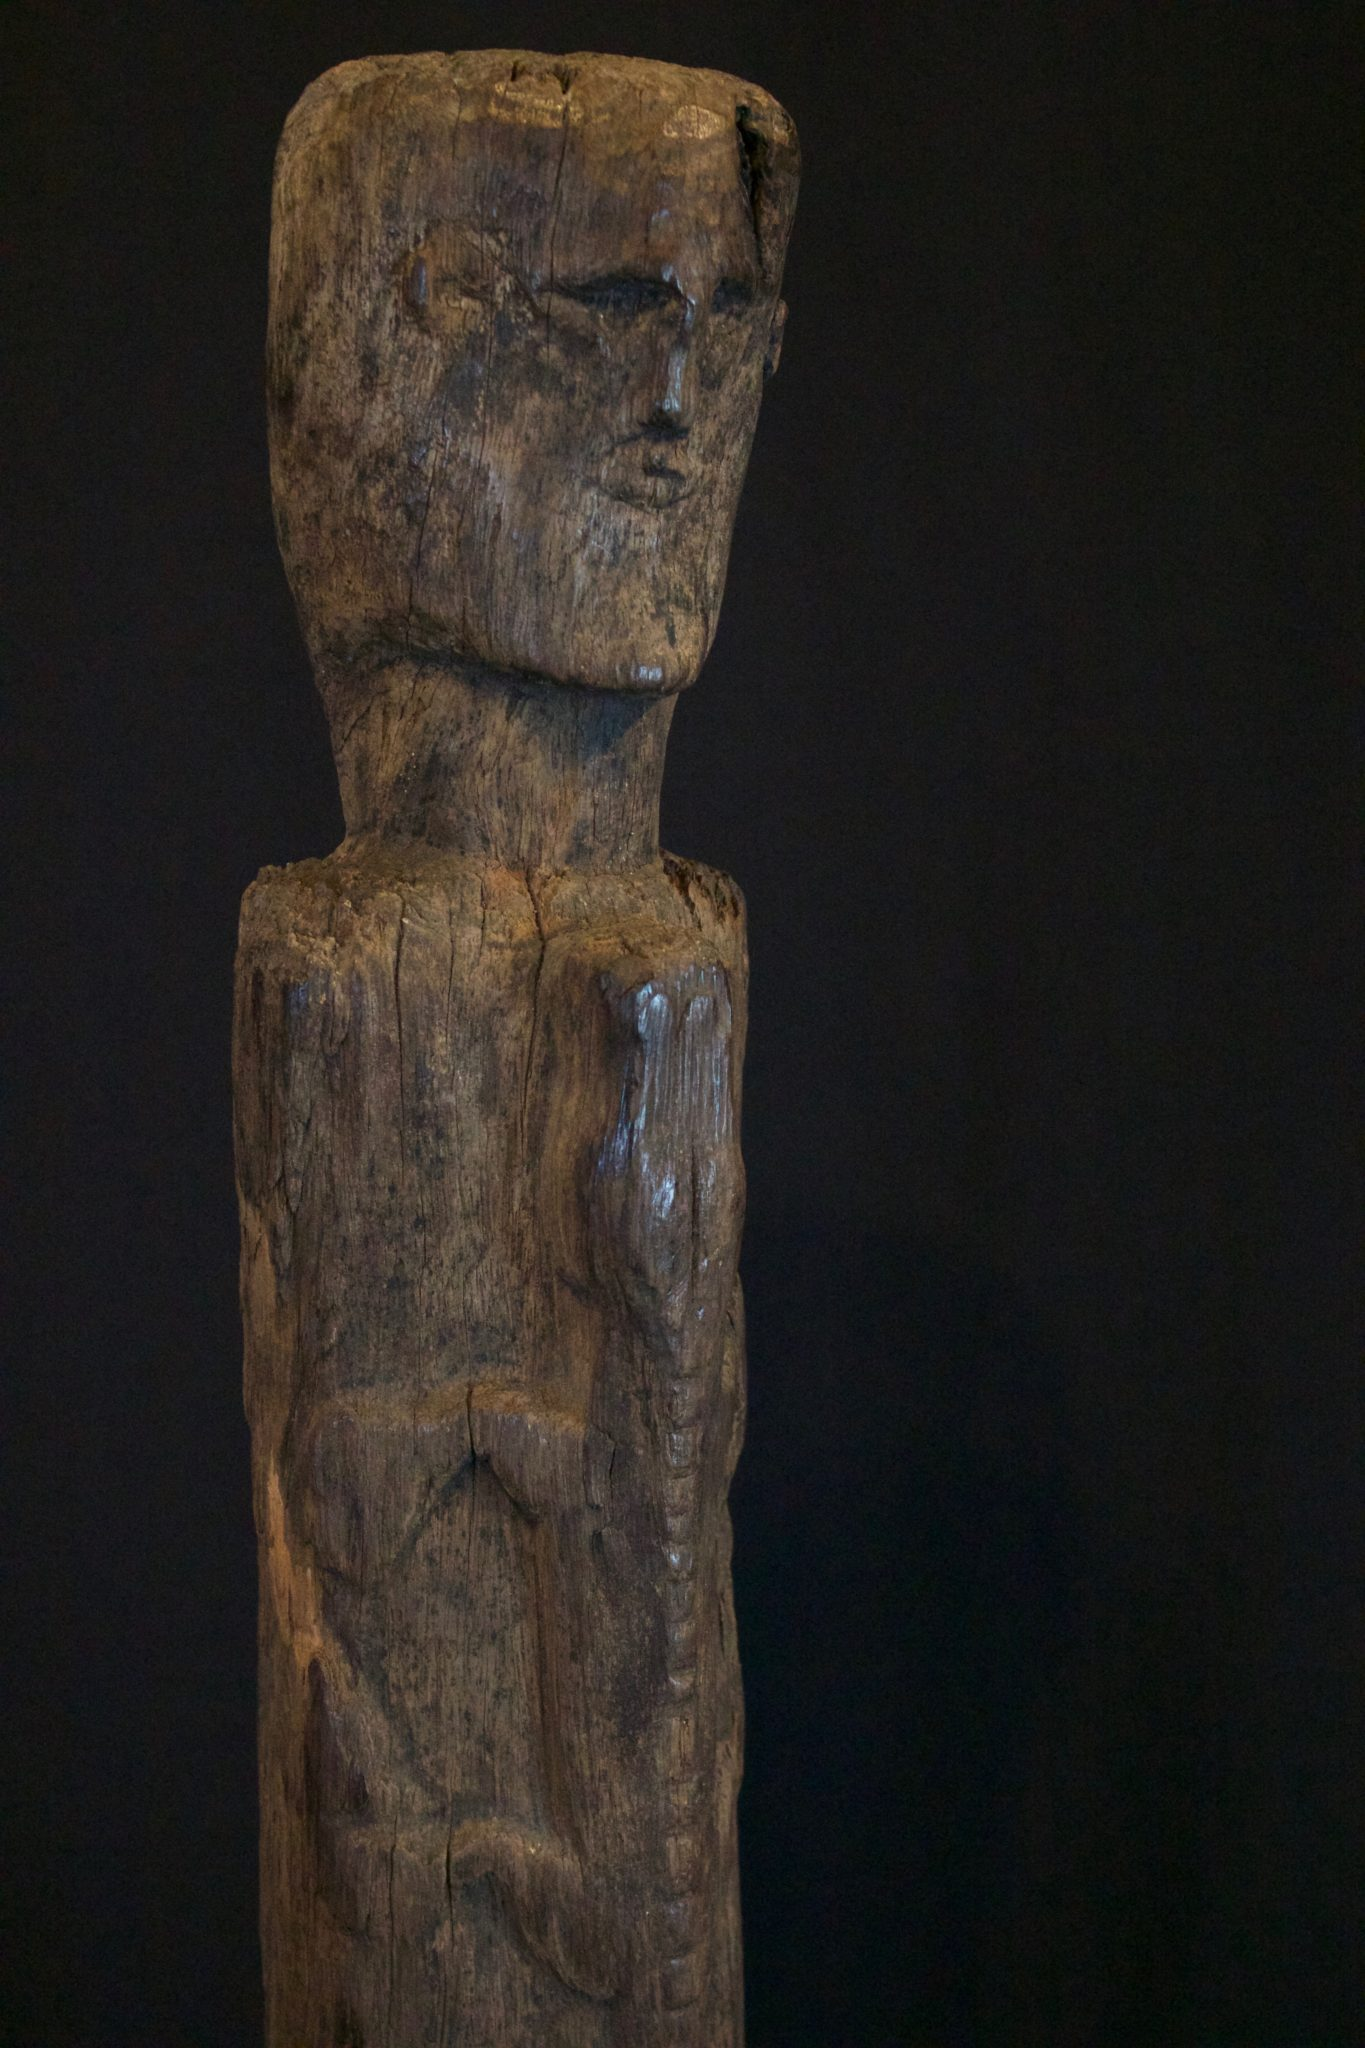 "Shaman Figure with Alligator, West Sumba Island, Lesser Sunda Islands, Indonesia, Kodi tribe, Mid to late 19th c, Wood, Used for protection rituals. 19 ¾"" x 4 ¼"" x 4"", $750."